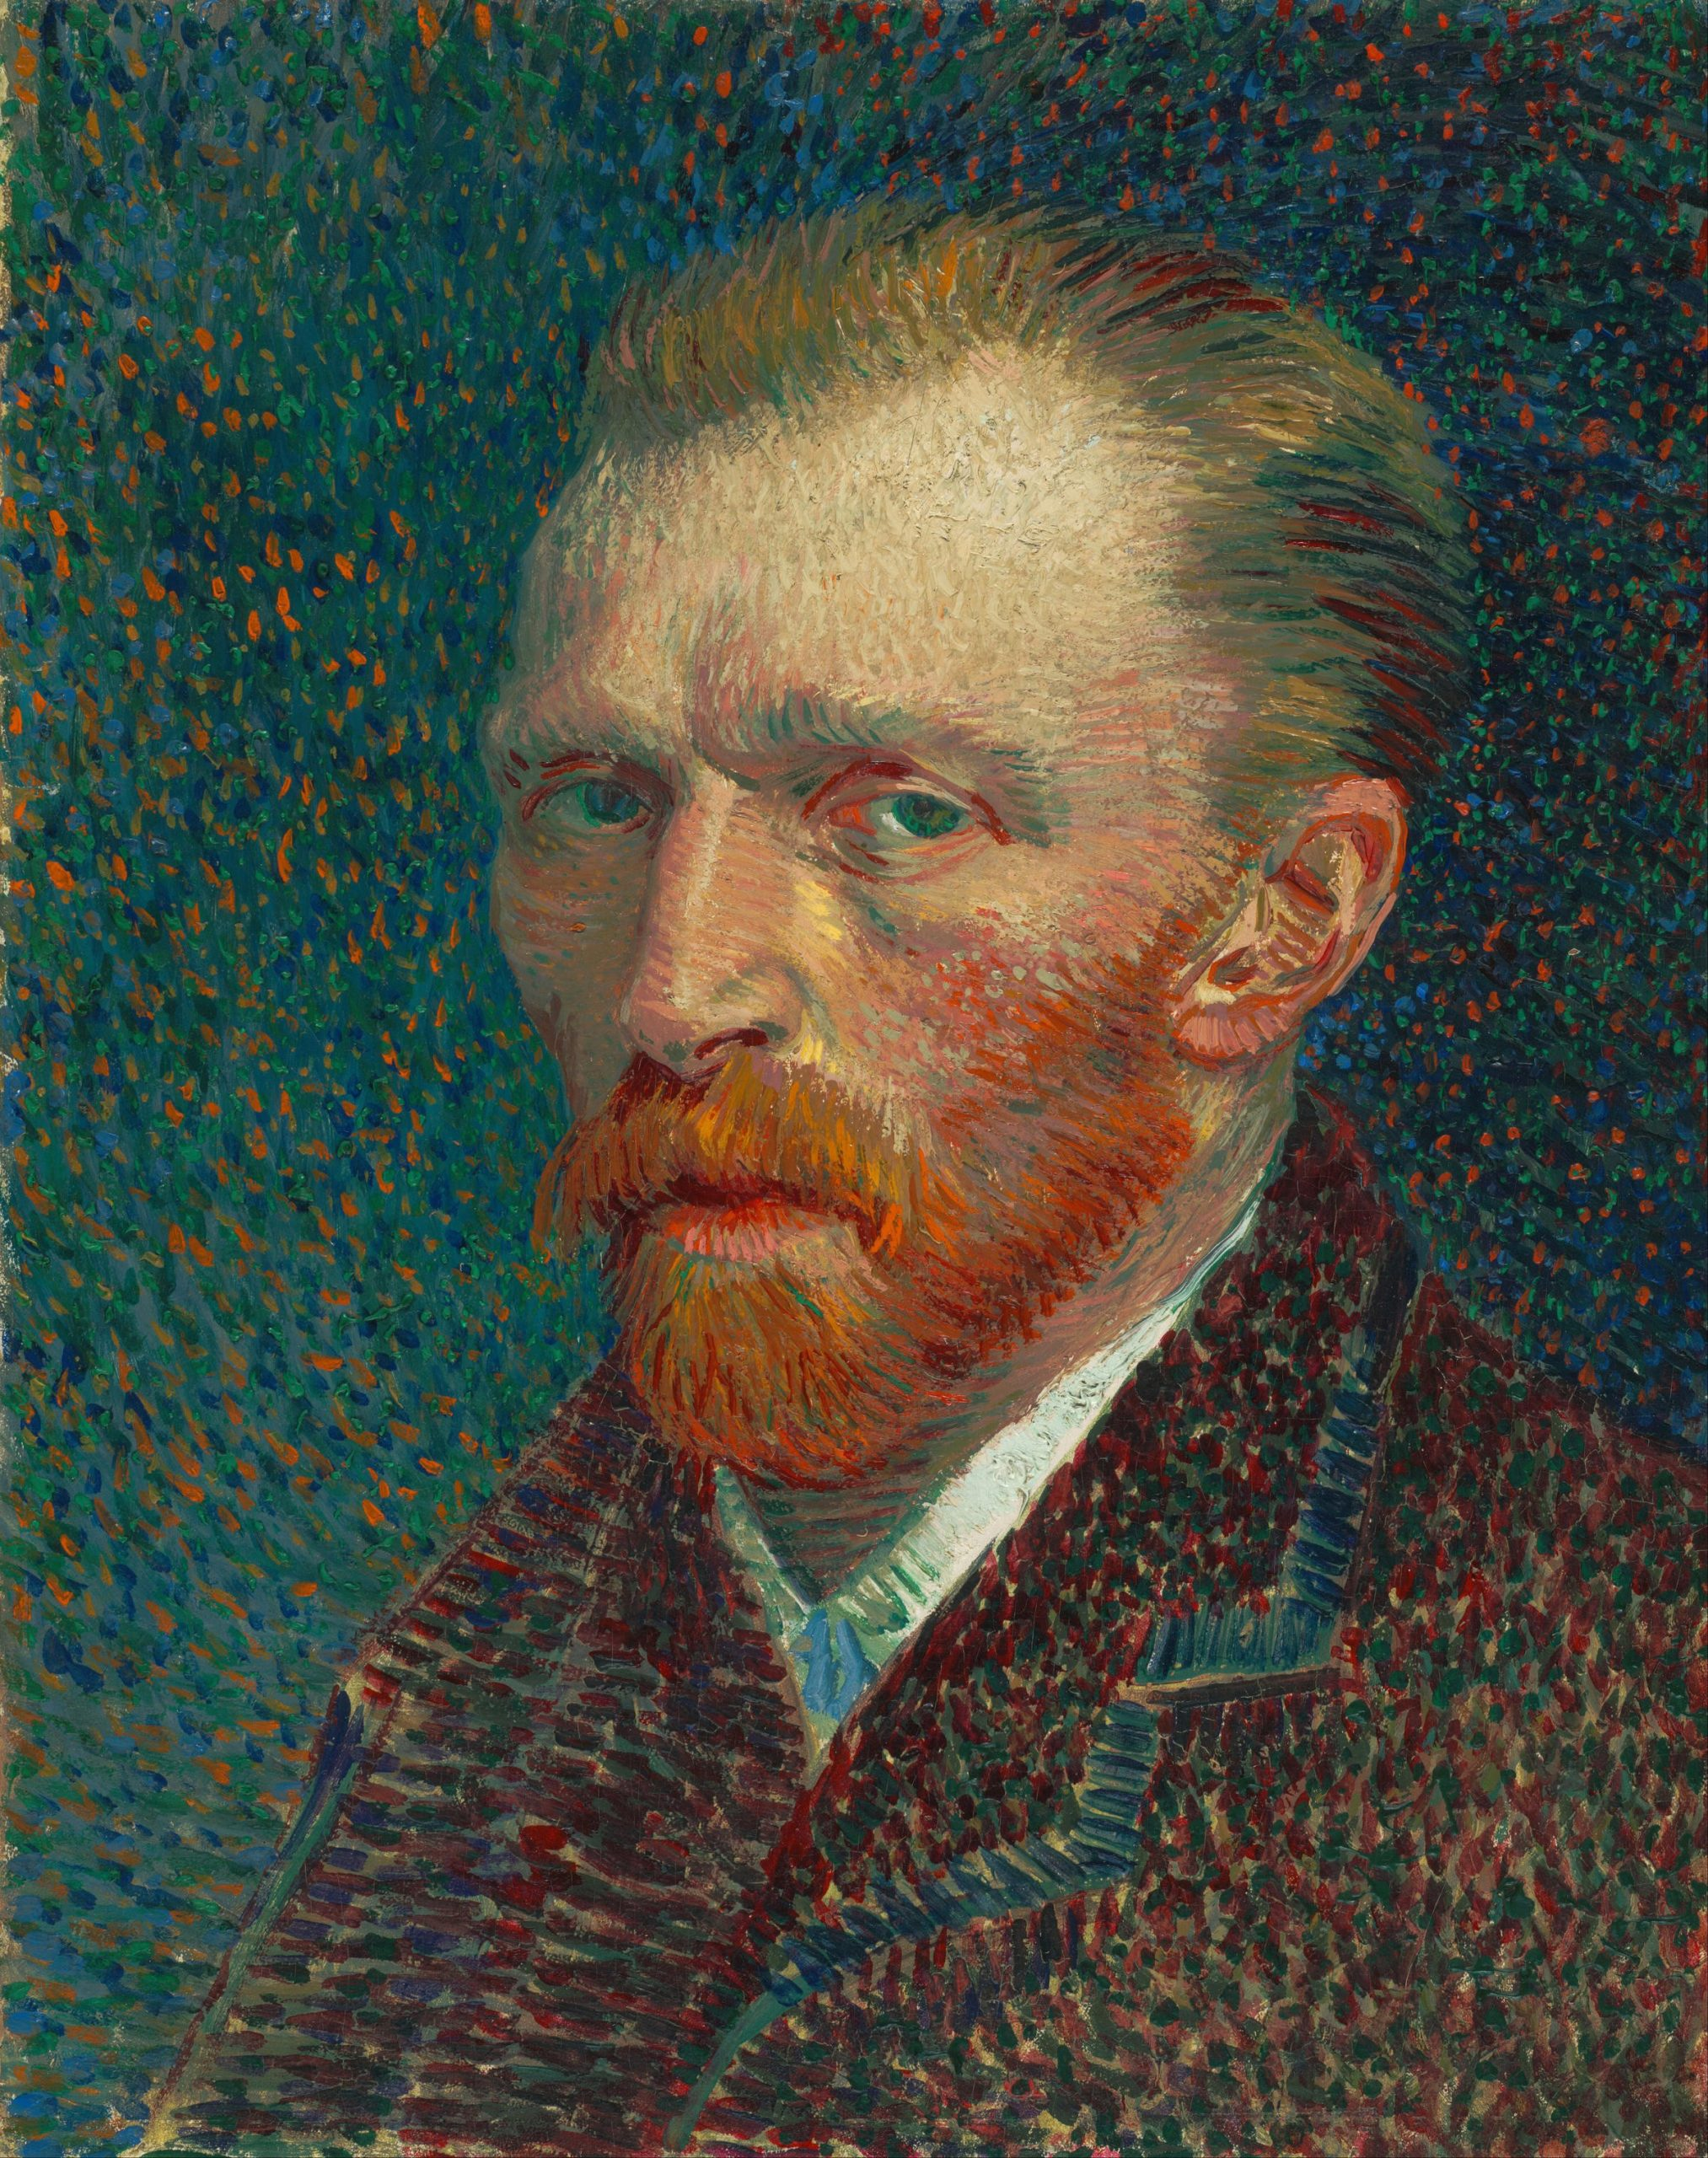 A New Book Reveals Vincent van Gogh and His Little Sister's Rich Correspondence About Their Struggles With Mental Health